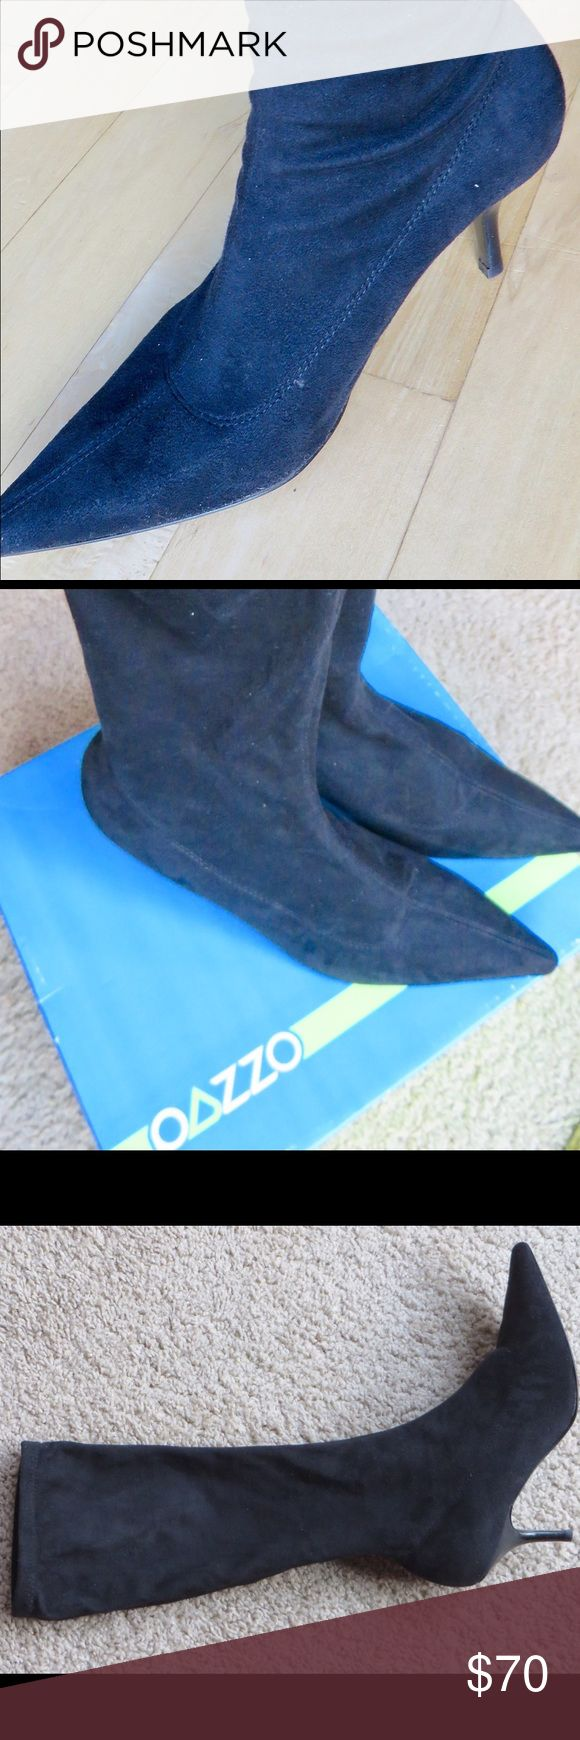 Black pull on ultra suede boots Black fabric ultra suede size 10  pull on boots.super soft and elegant looking. Pull on like a knee sock, 3 inch heel, top of boot comes below knee. New in box  but no tag , pics don't do justice,these are fabulous! pazzo Shoes Heeled Boots